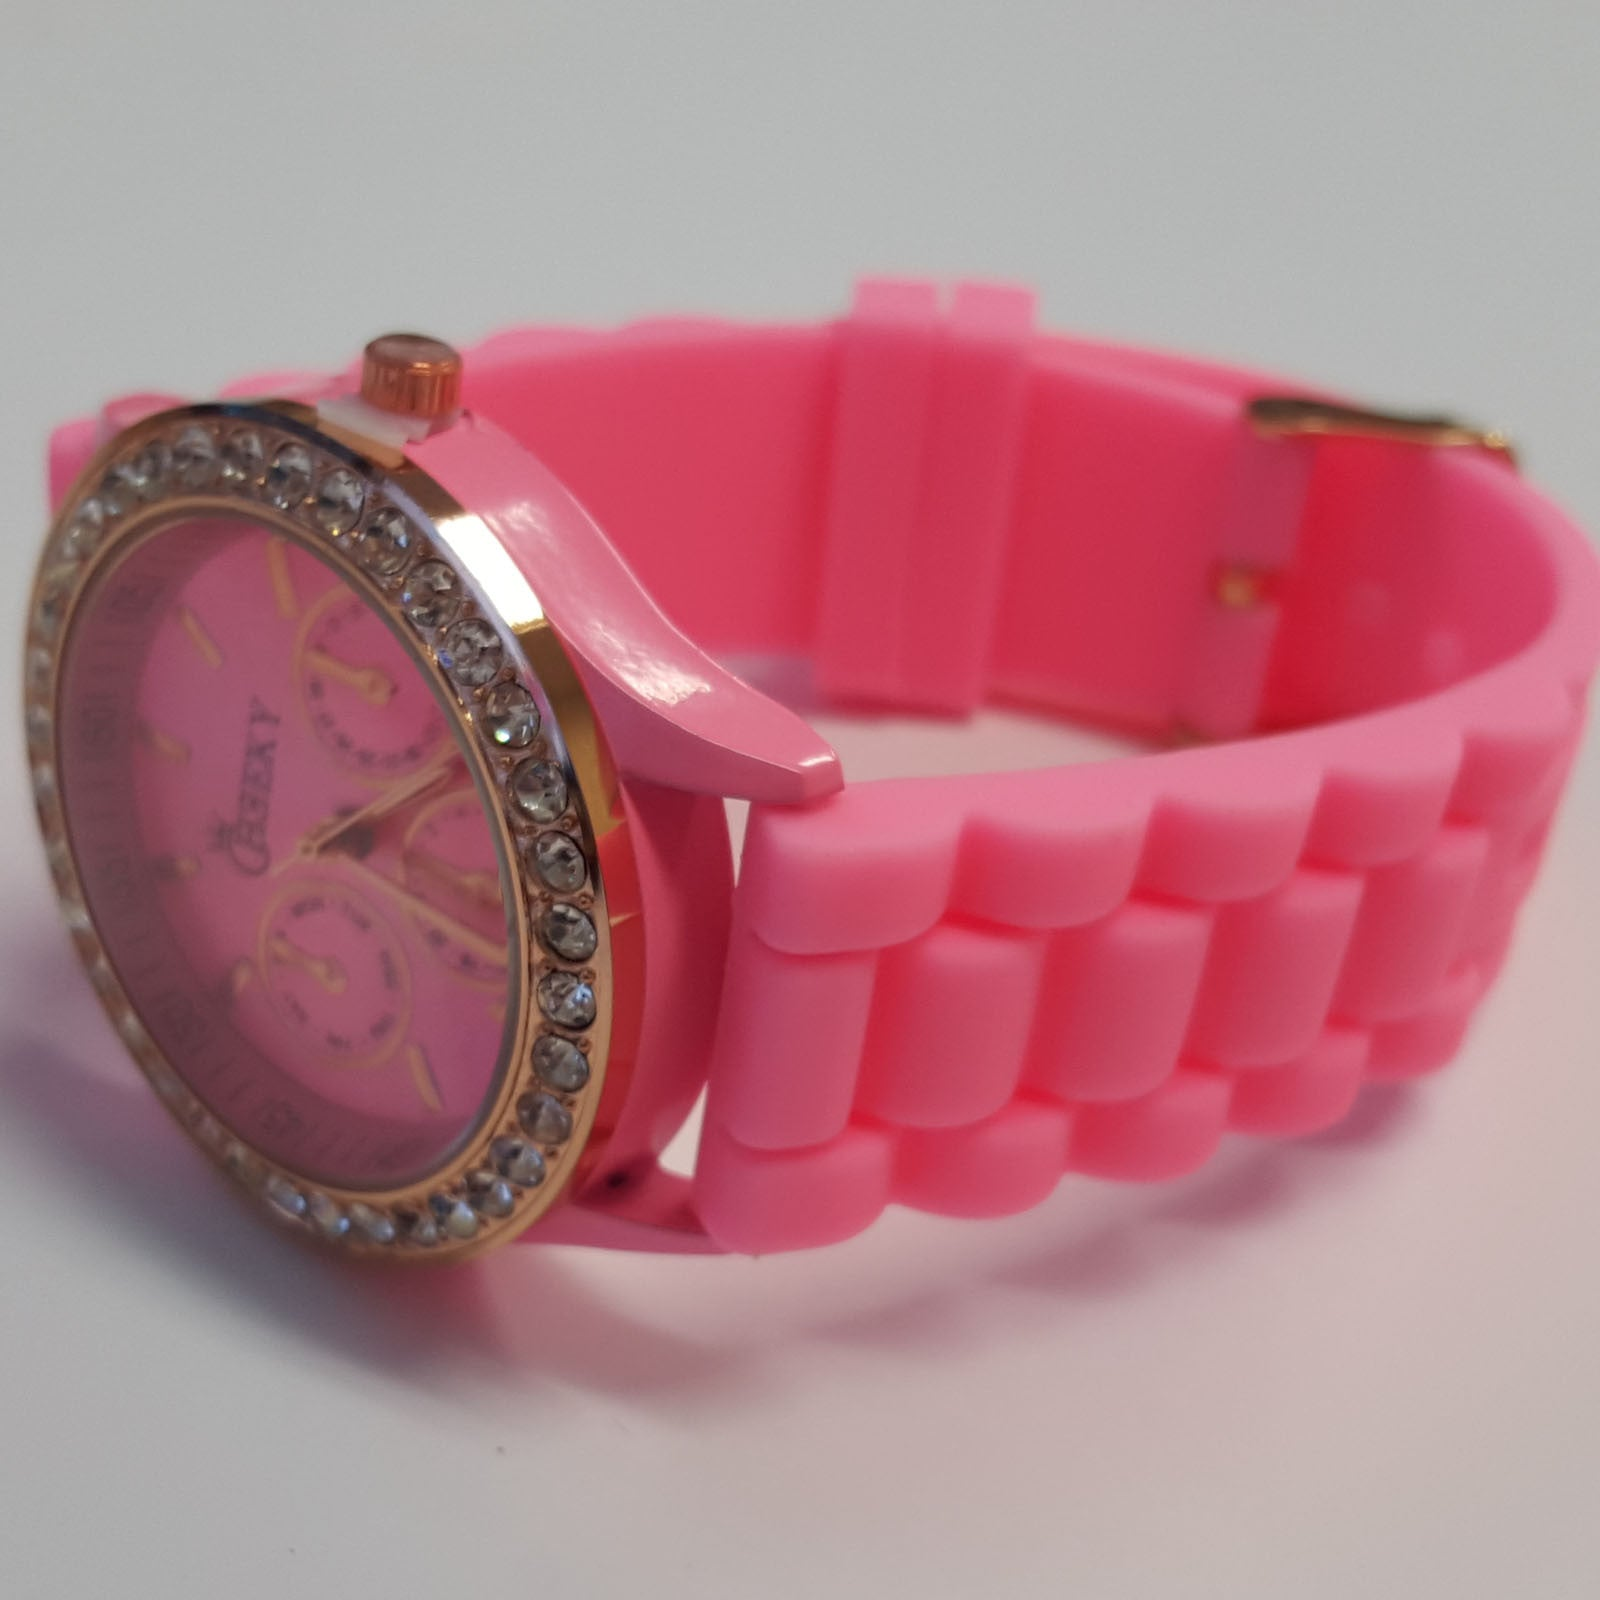 the scale upscale gem set a womens watch ladies watches product breitling shop diamond crop false zoom with pink subsampling bezel colt